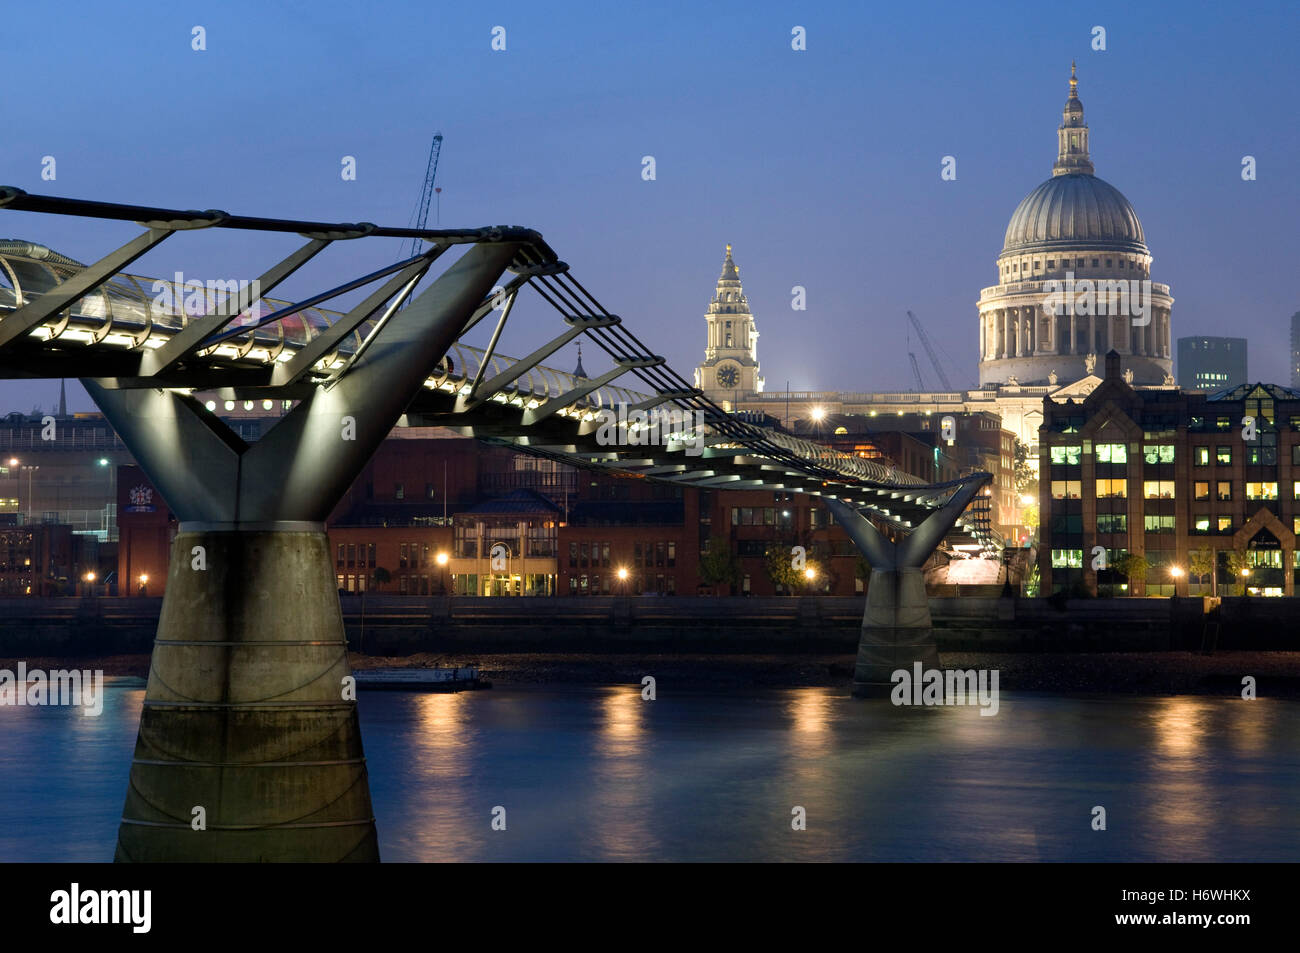 Millennium Bridge over the Thames and St. Paul's Cathedral at night, London, England, United Kingdom, Europe - Stock Image